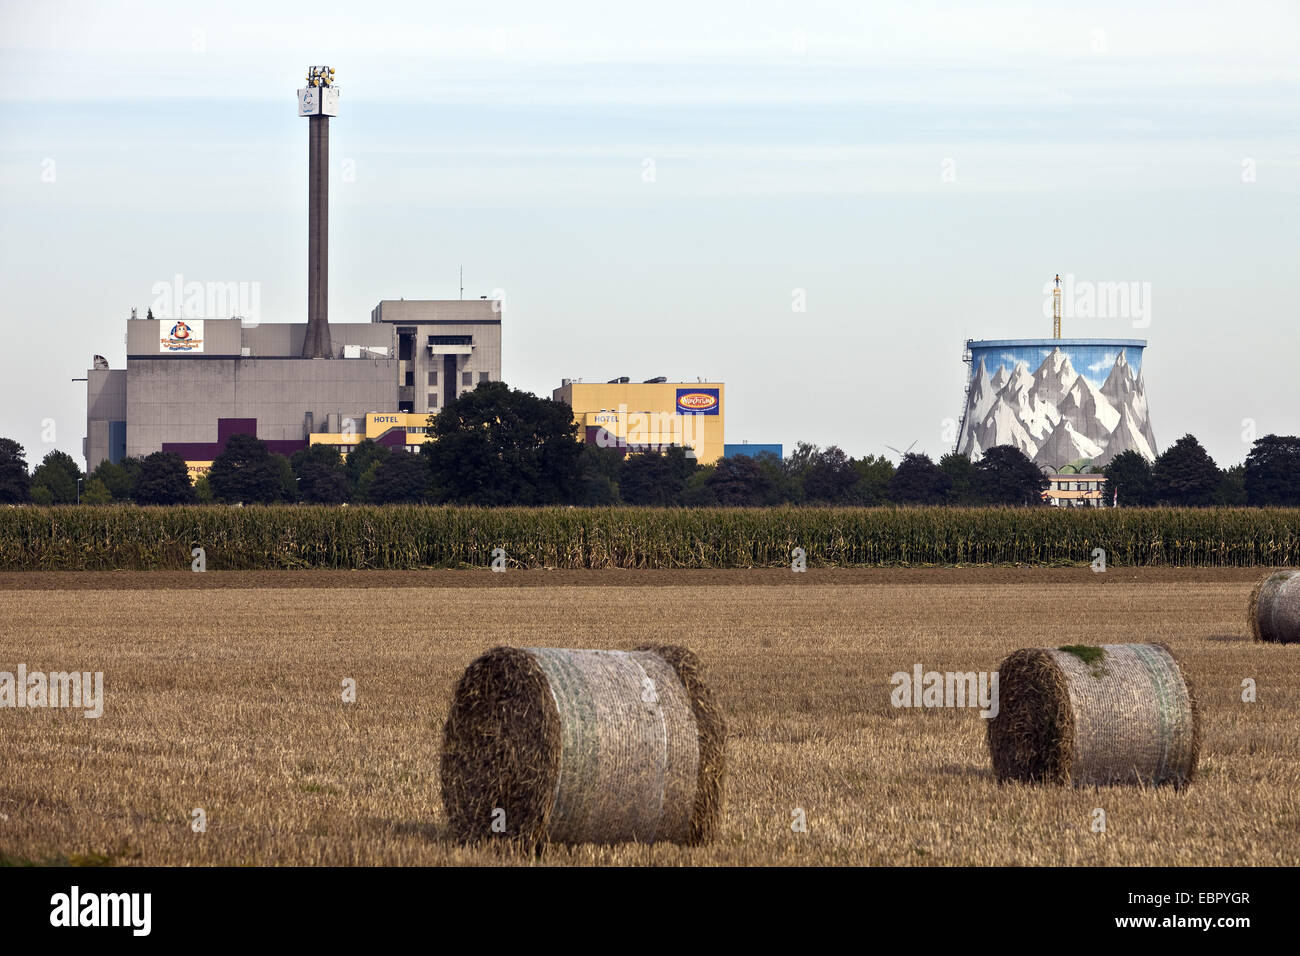 bales of stray on stubble field, former nuclear reactor in background, Germany, North Rhine-Westphalia, Kalkar - Stock Image